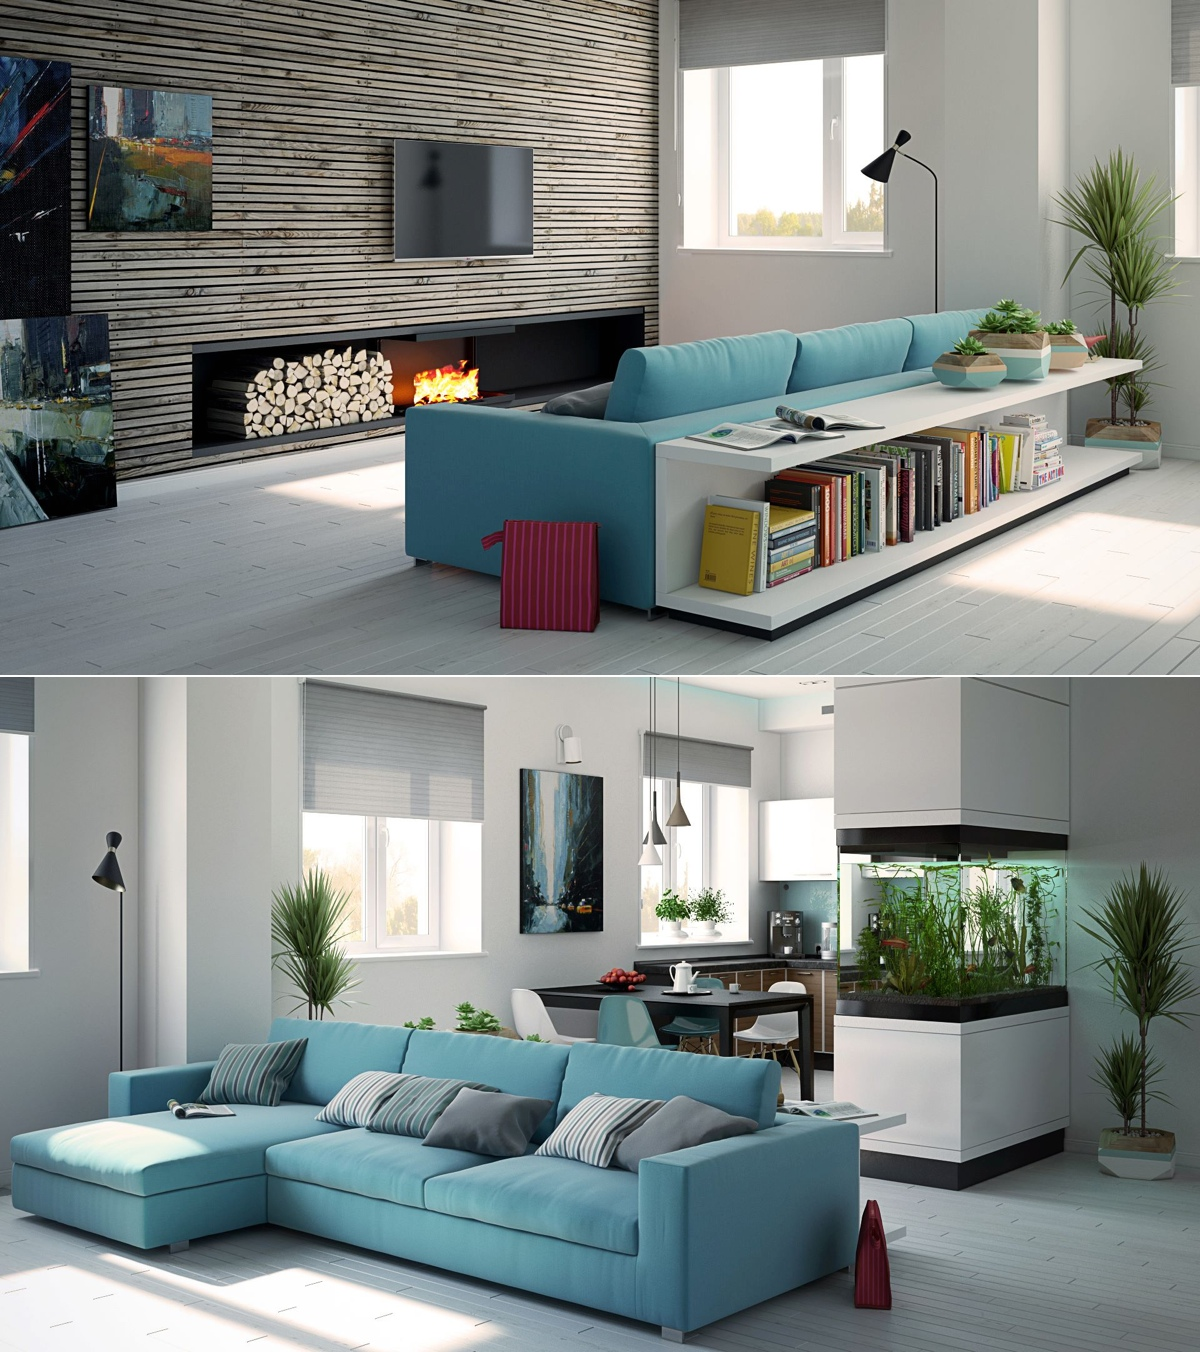 Awesomely Stylish Urban Living Rooms. Living Room Hanging Light Fixtures. Www Cheap Living Room Furniture. Small Living Room Ideas Uk 2018. Paint Color For Living Room 2018. Blue Living Room Decorating Ideas. L Shaped Living Room Furniture. Living Room Tile Floor Images. How Much To Carpet A Living Room